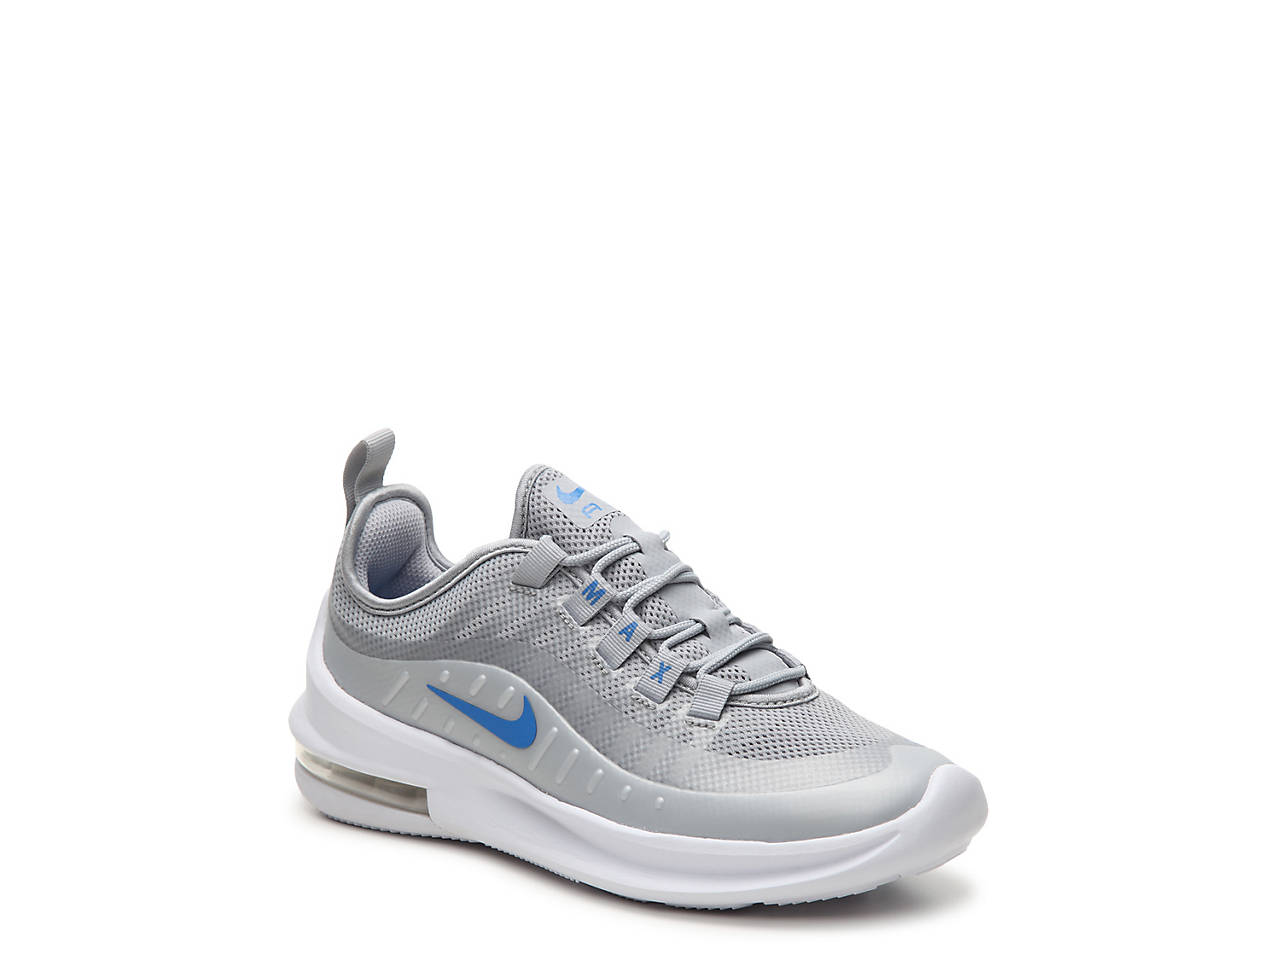 c4a86b84ed8 Nike Air Max Axis Youth Sneaker Kids Shoes